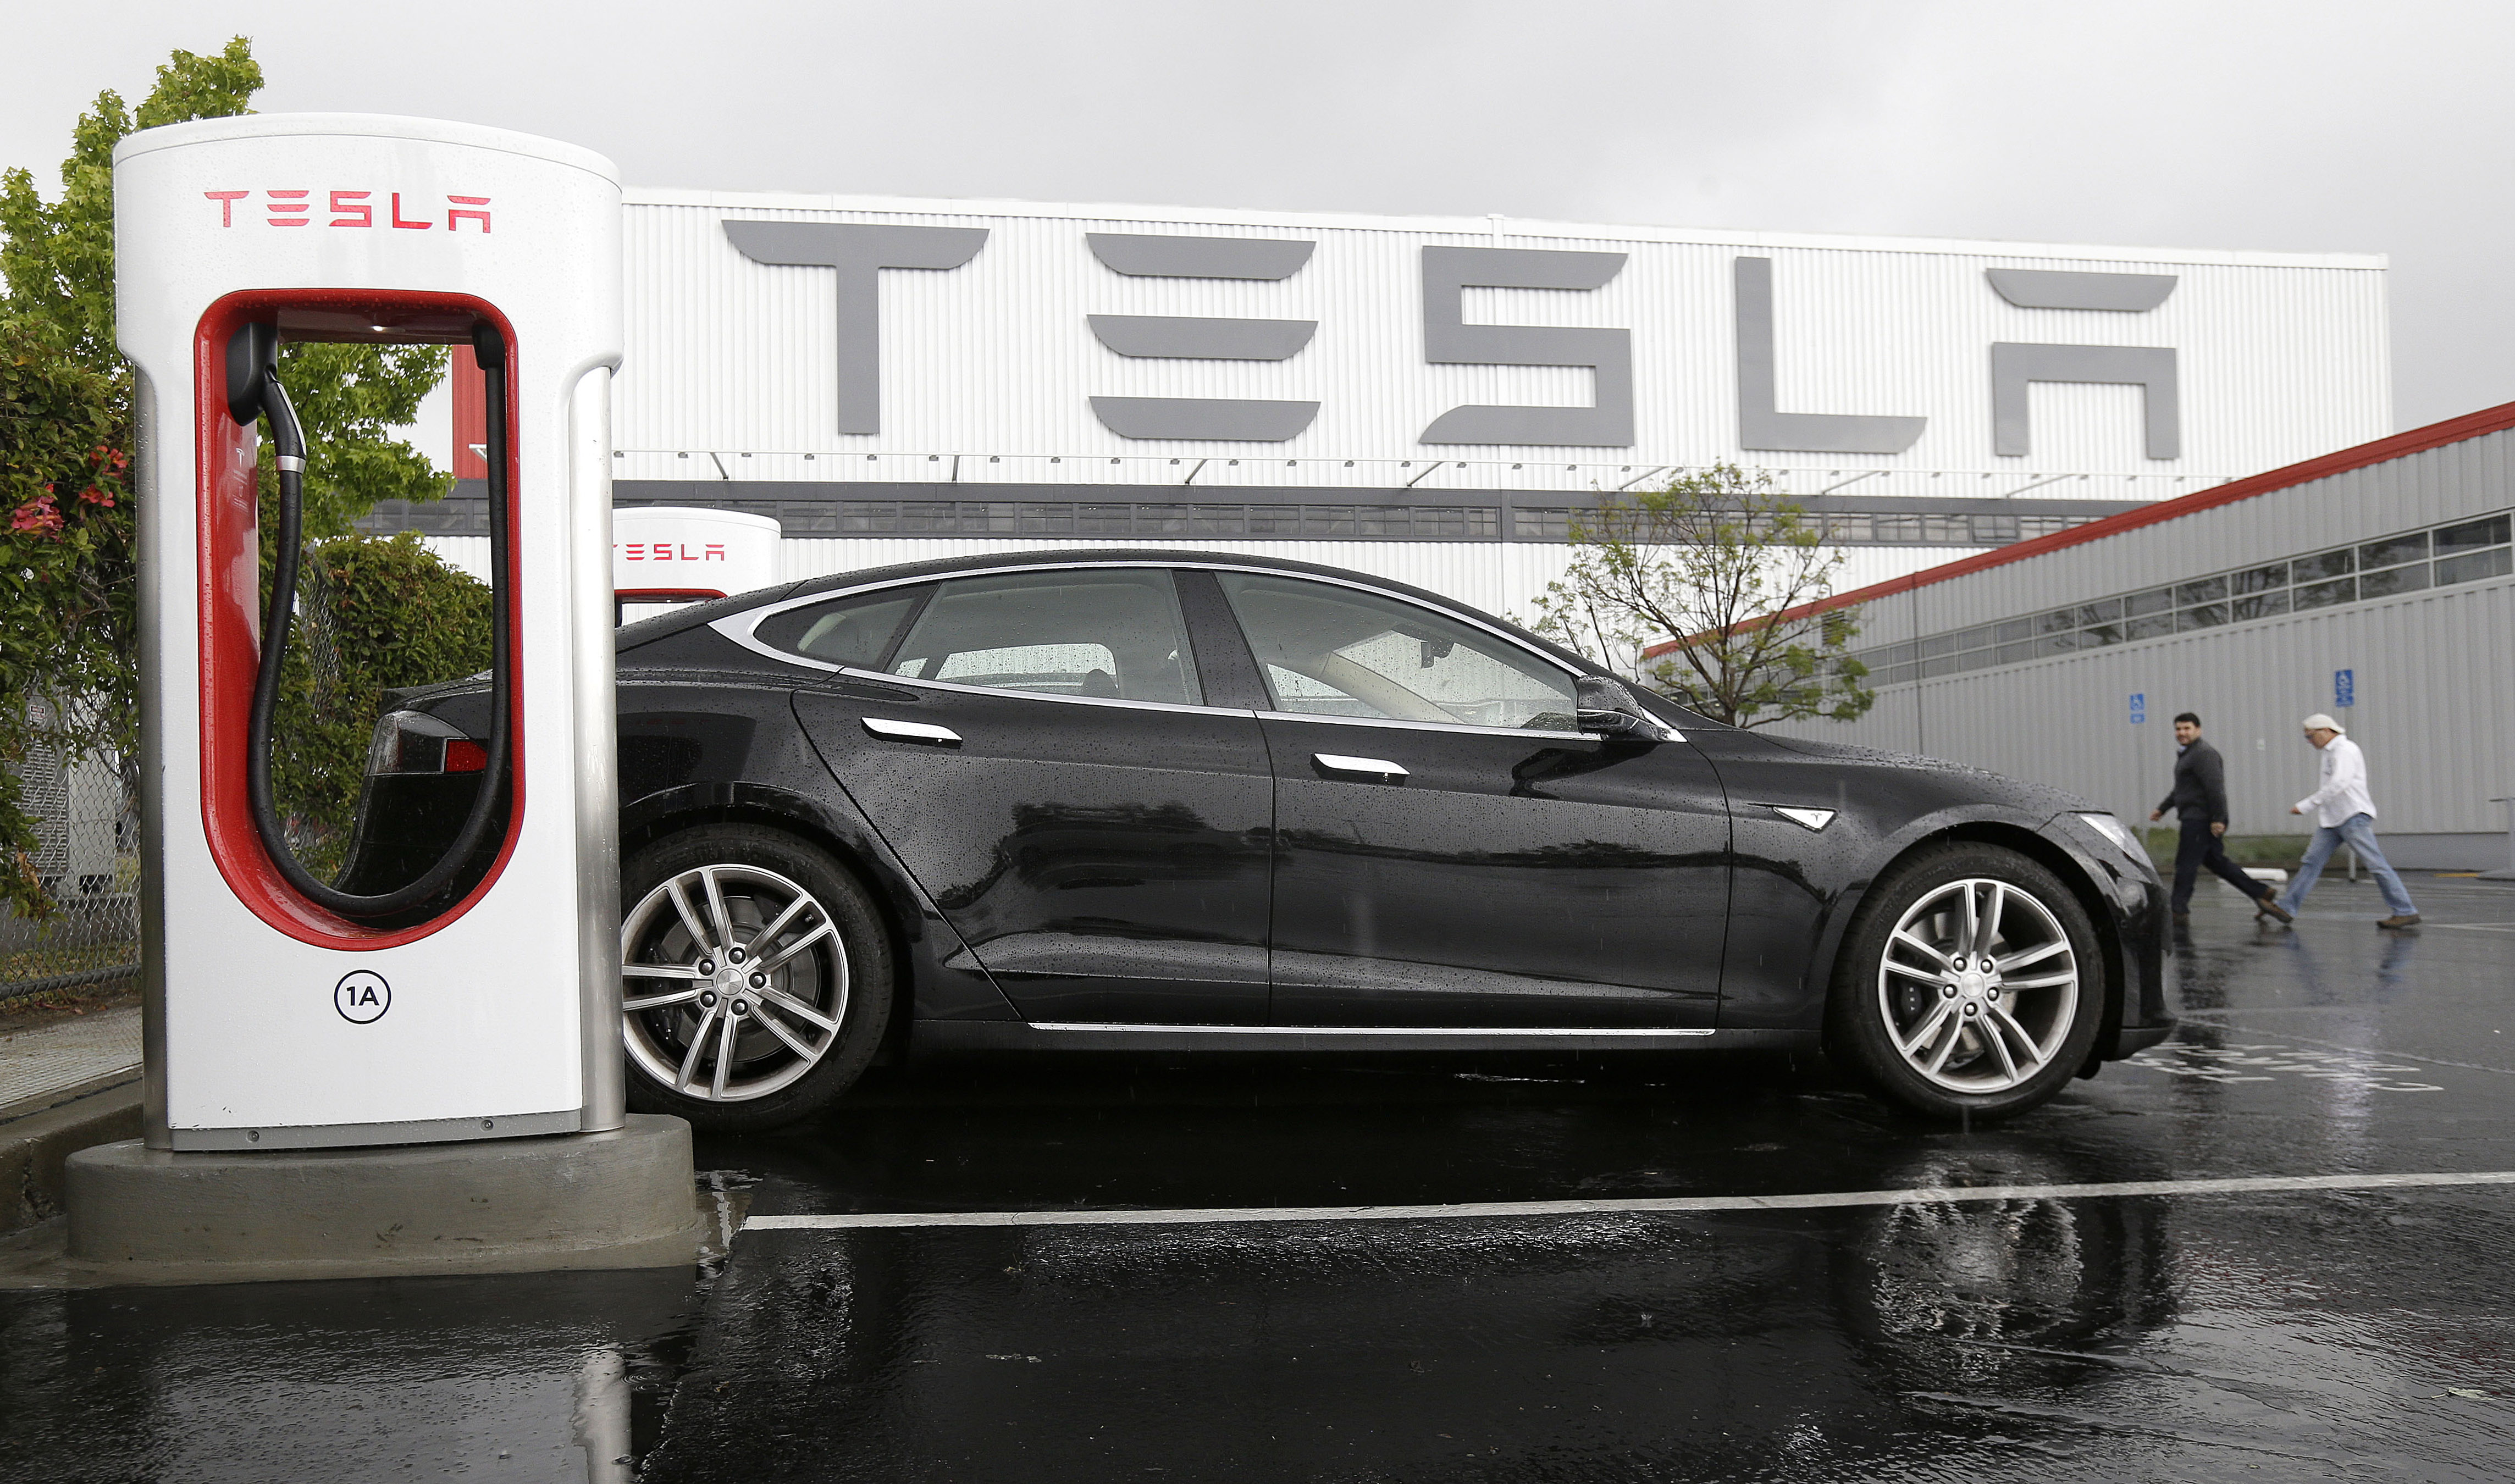 Maryland is one of the best states for Tesla owners